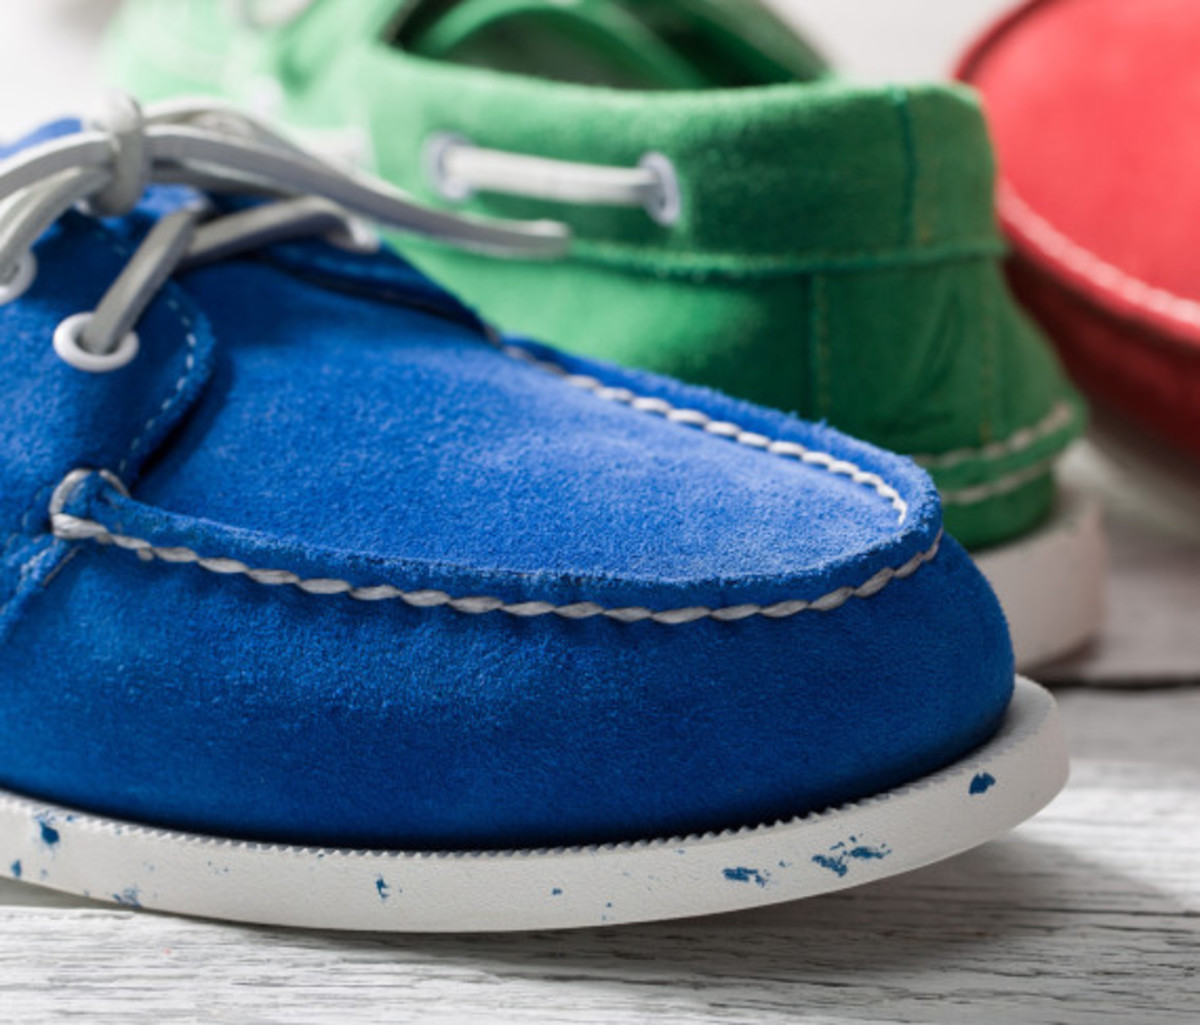 Barneys New York x Sperry Top-Sider Spring Summer 2014 Collection ... 6901e065a5e3